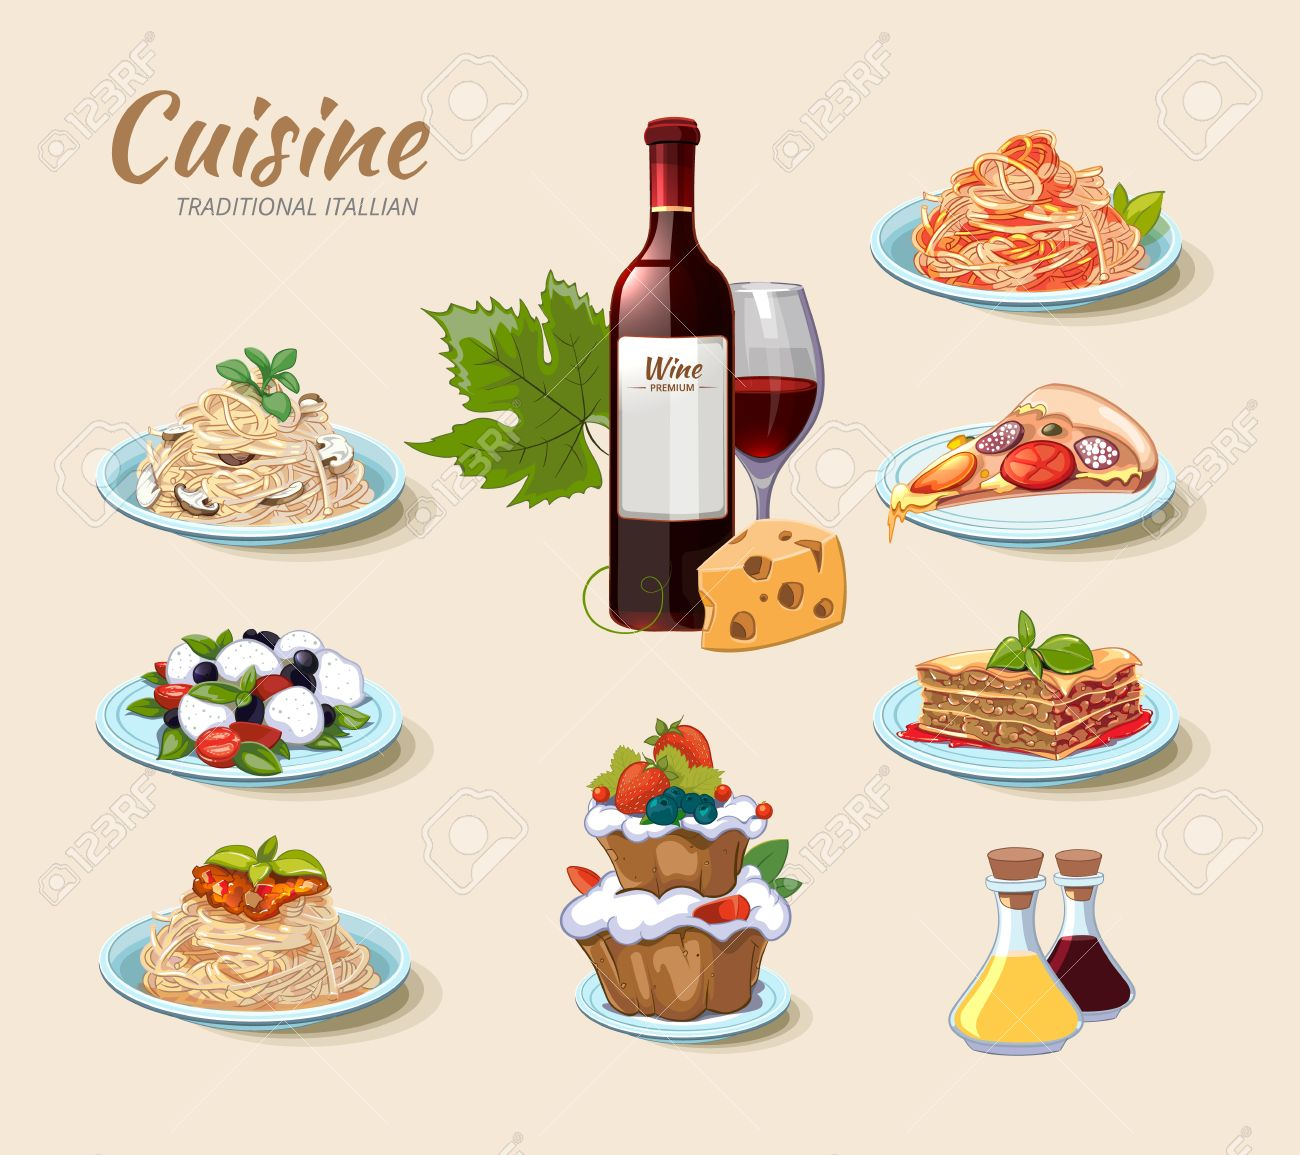 Italian cuisine vector icons set in cartoon style. Cake and cheese, wine and pizza, food menu, pasta spaghetti illustration - 51643719